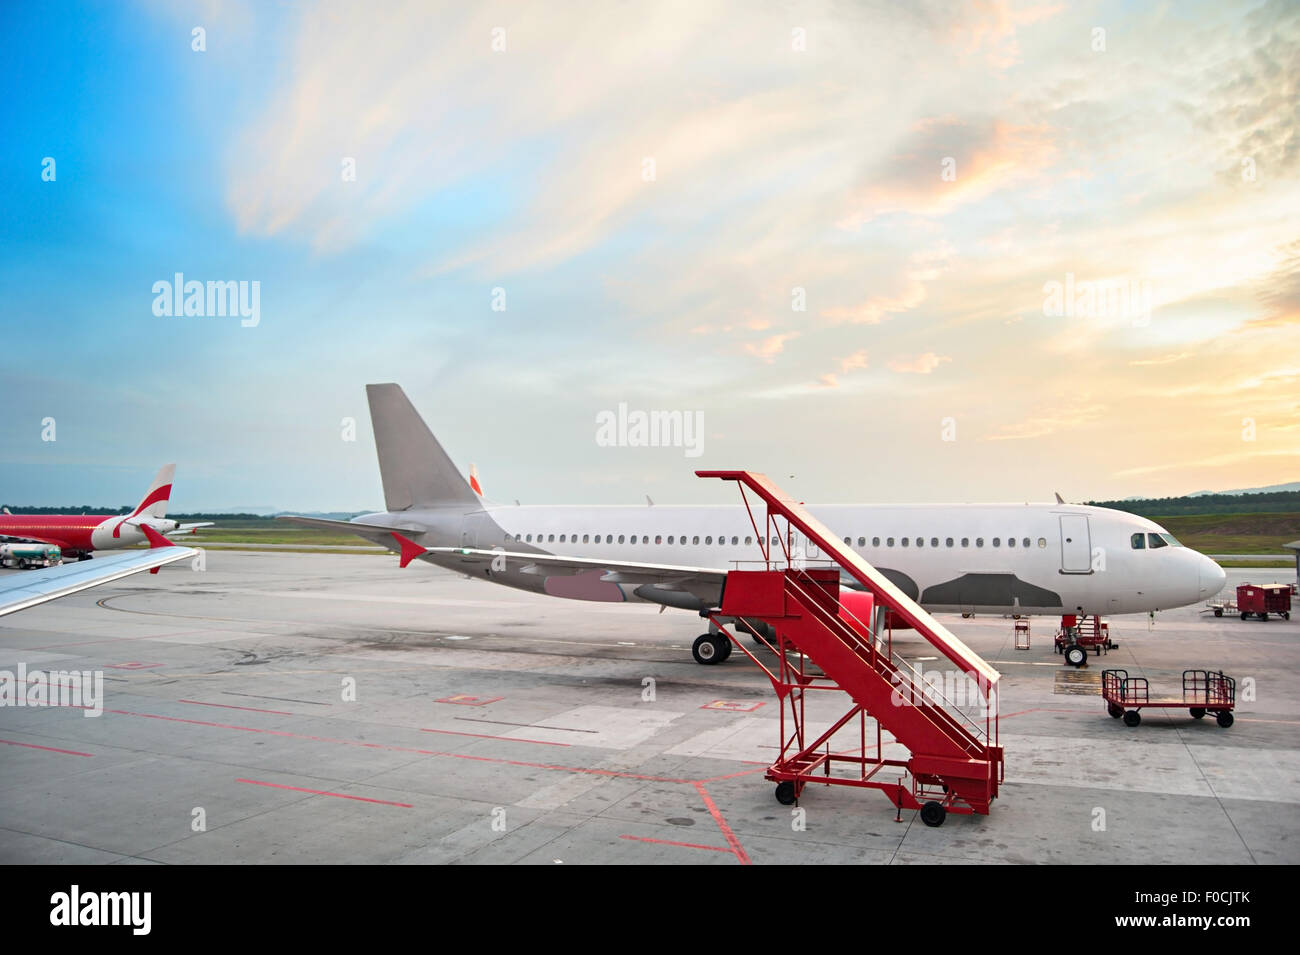 Airplaine at airport in the beautiful sunrise. - Stock Image